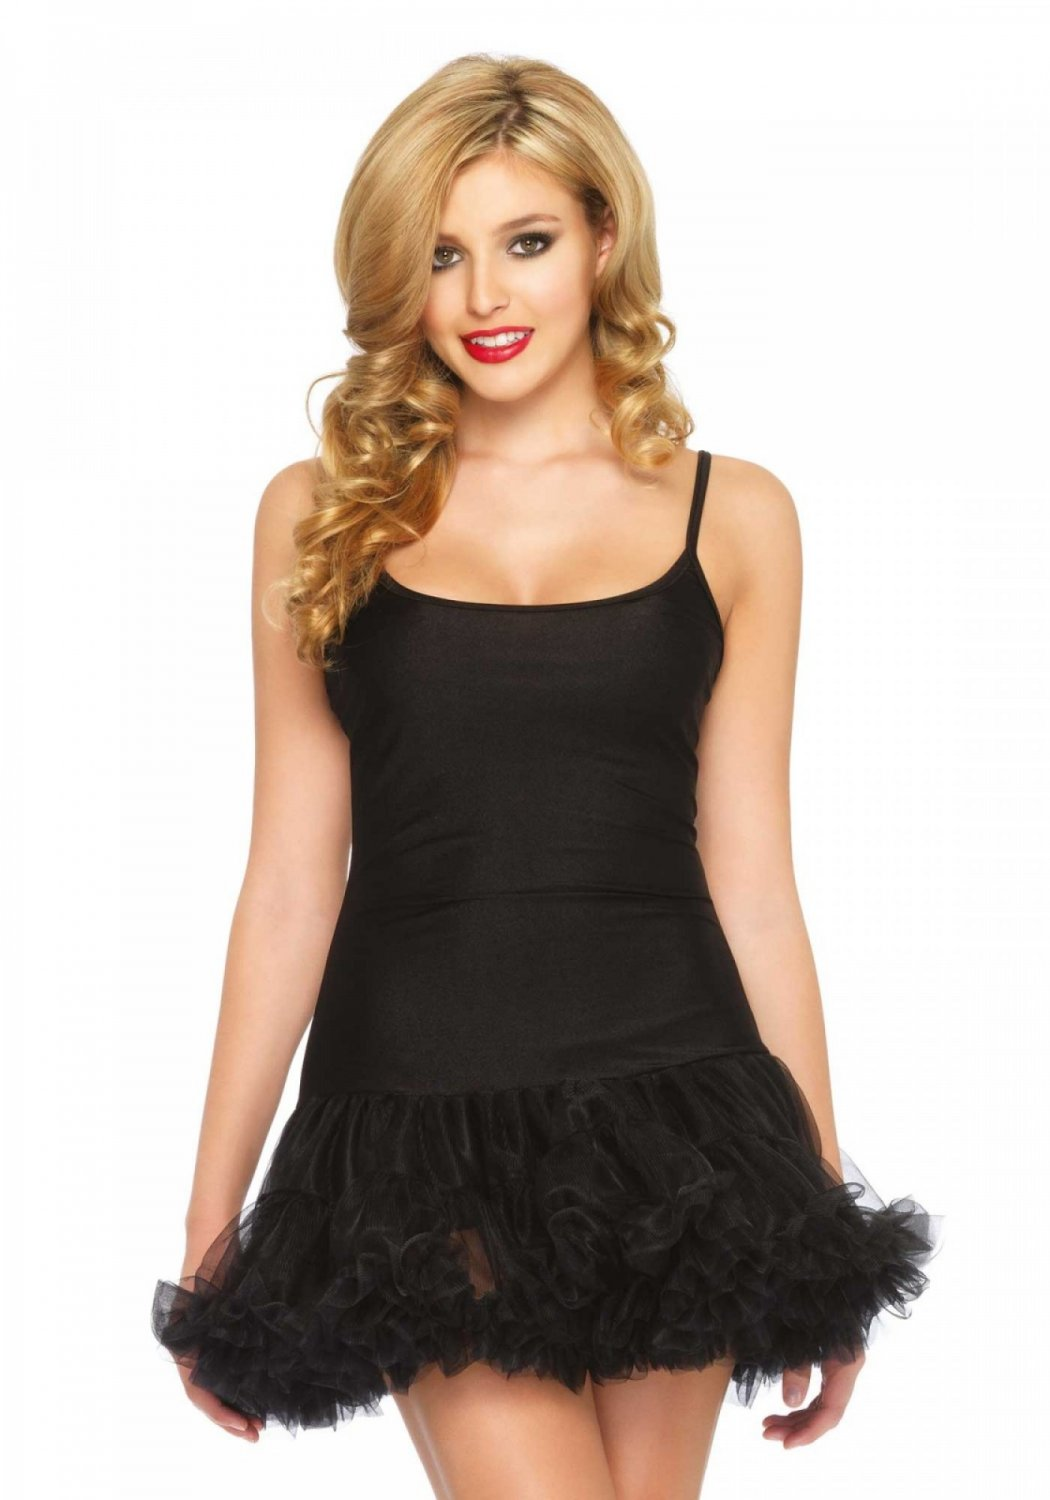 Leg Avenue Petticoat Dress SM